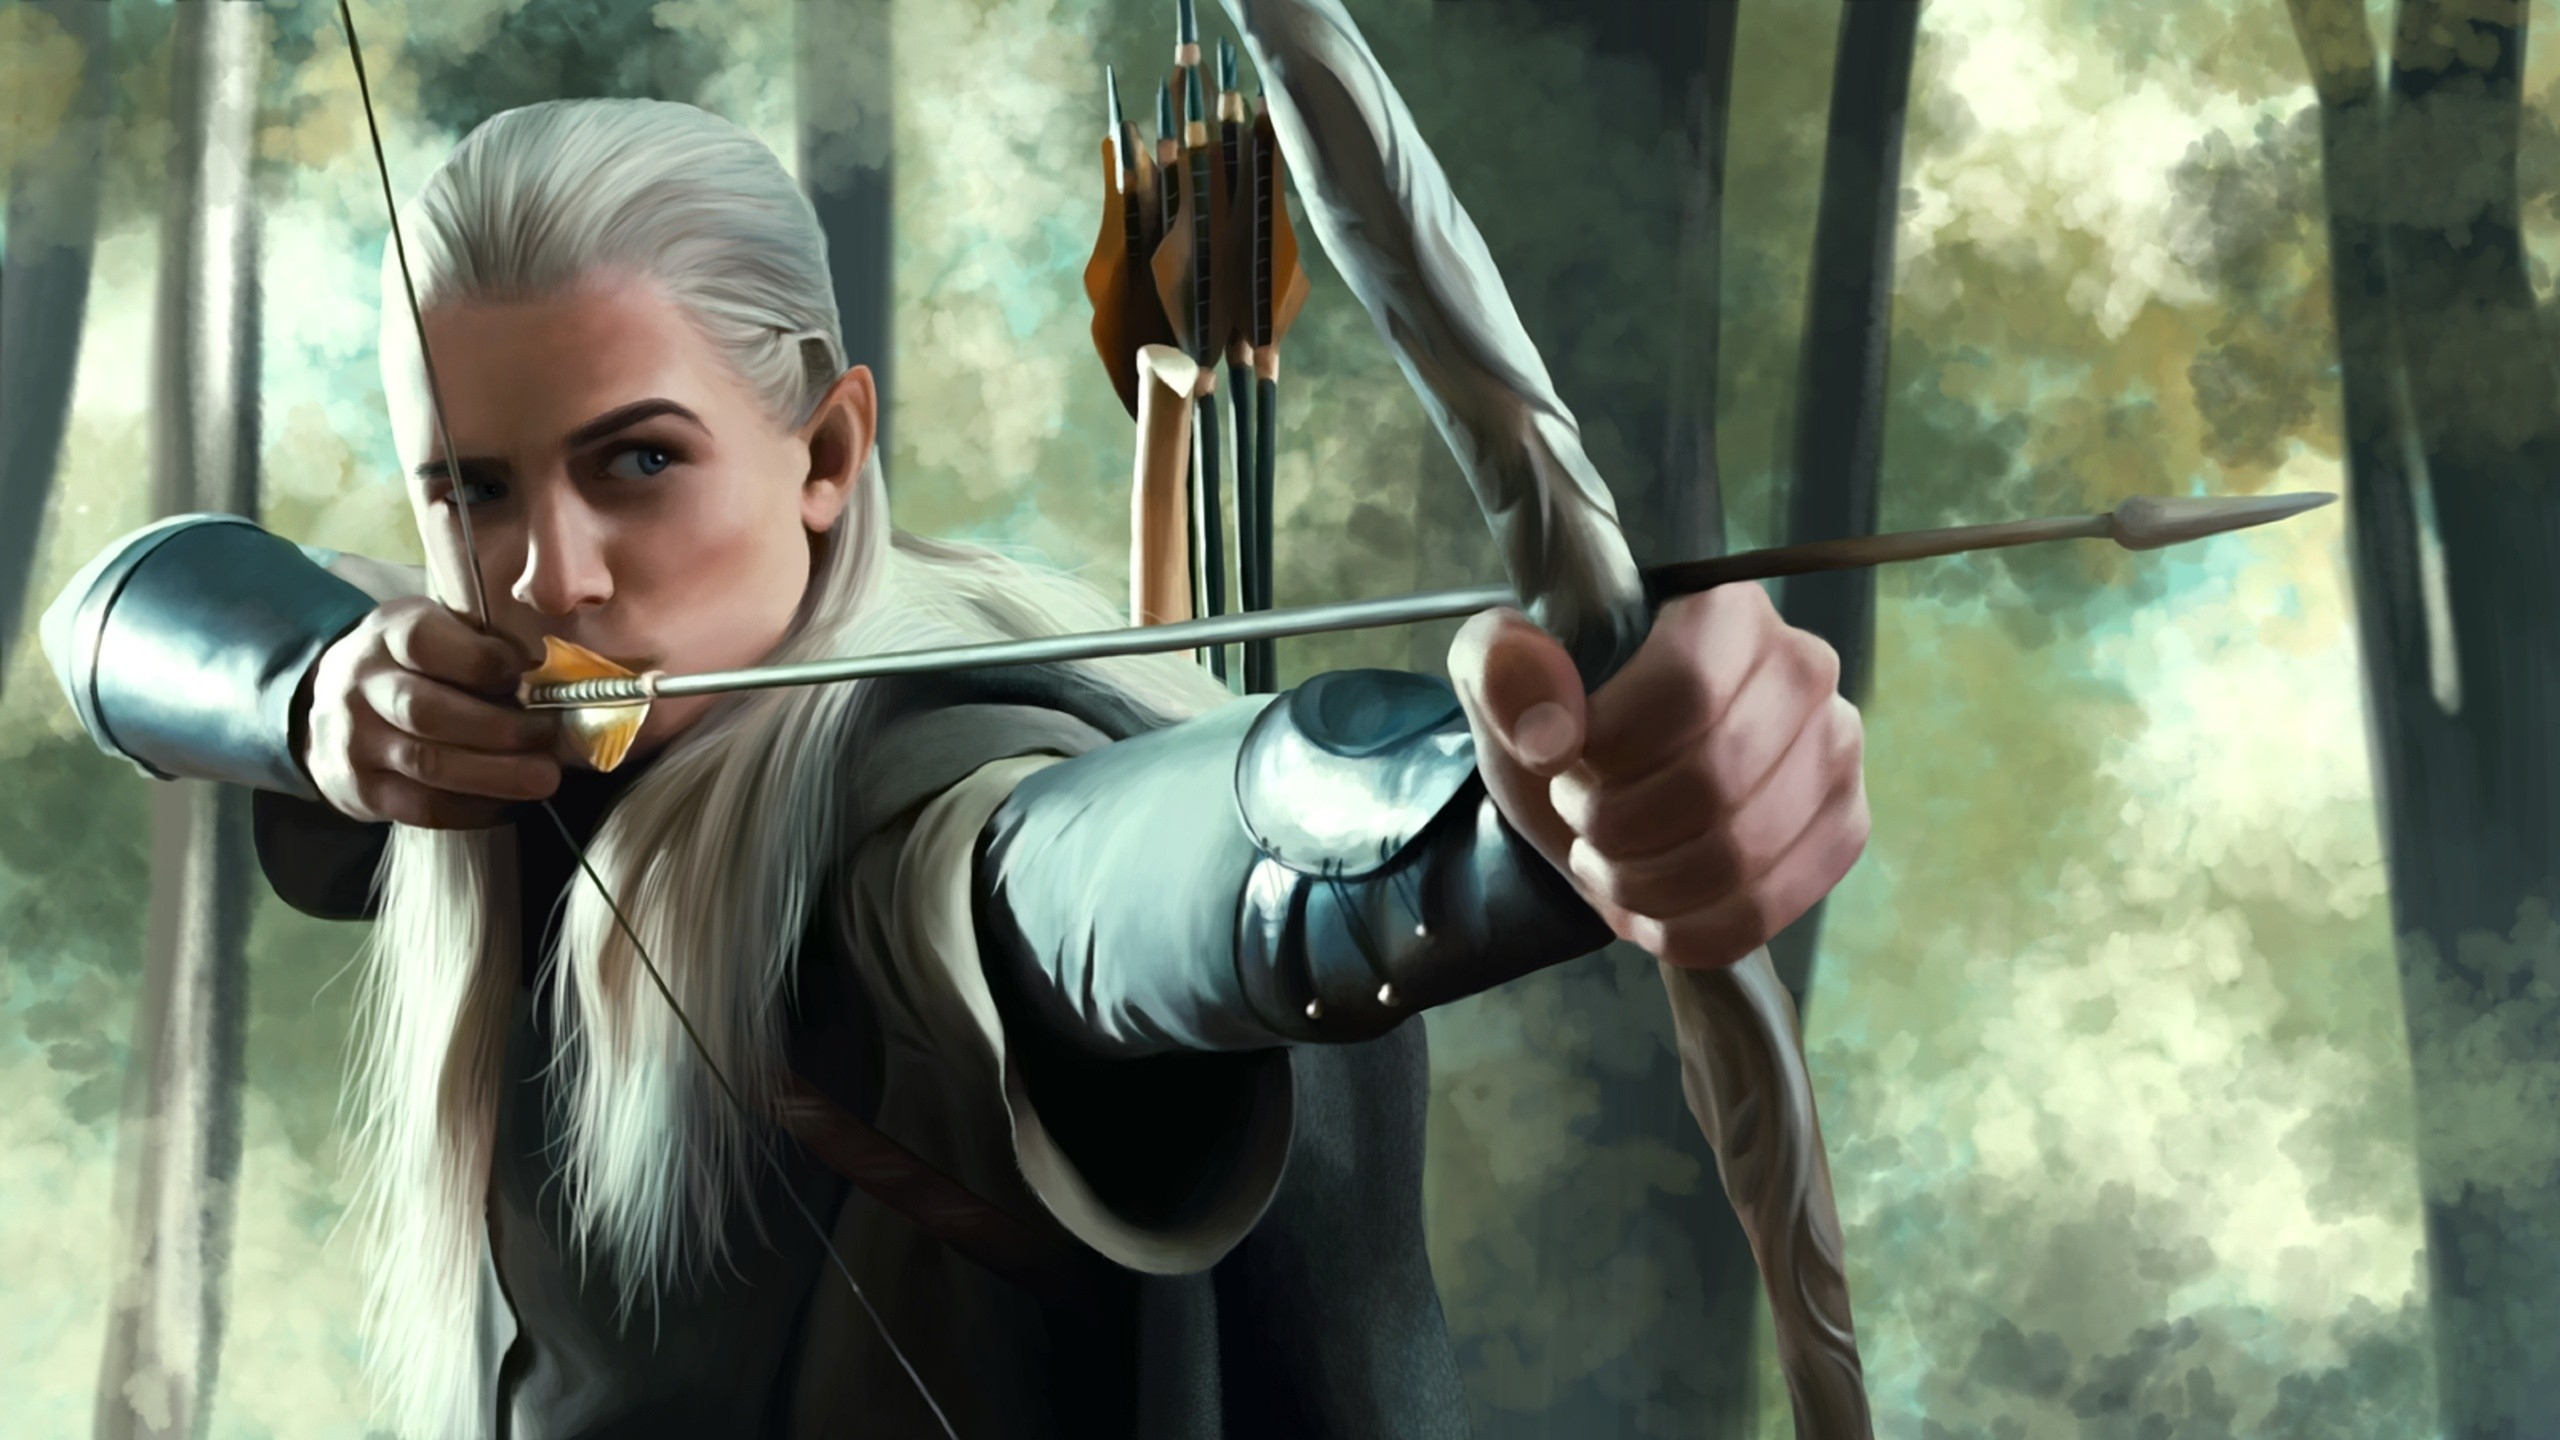 2560x1440  Elf, Legolas, The Lord Of The Rings, Elf The Prince Of The  Woodland Realm The Hobbit Legolas The Lord Of The Rings ..., ..., The  Hobbit, Films, ...